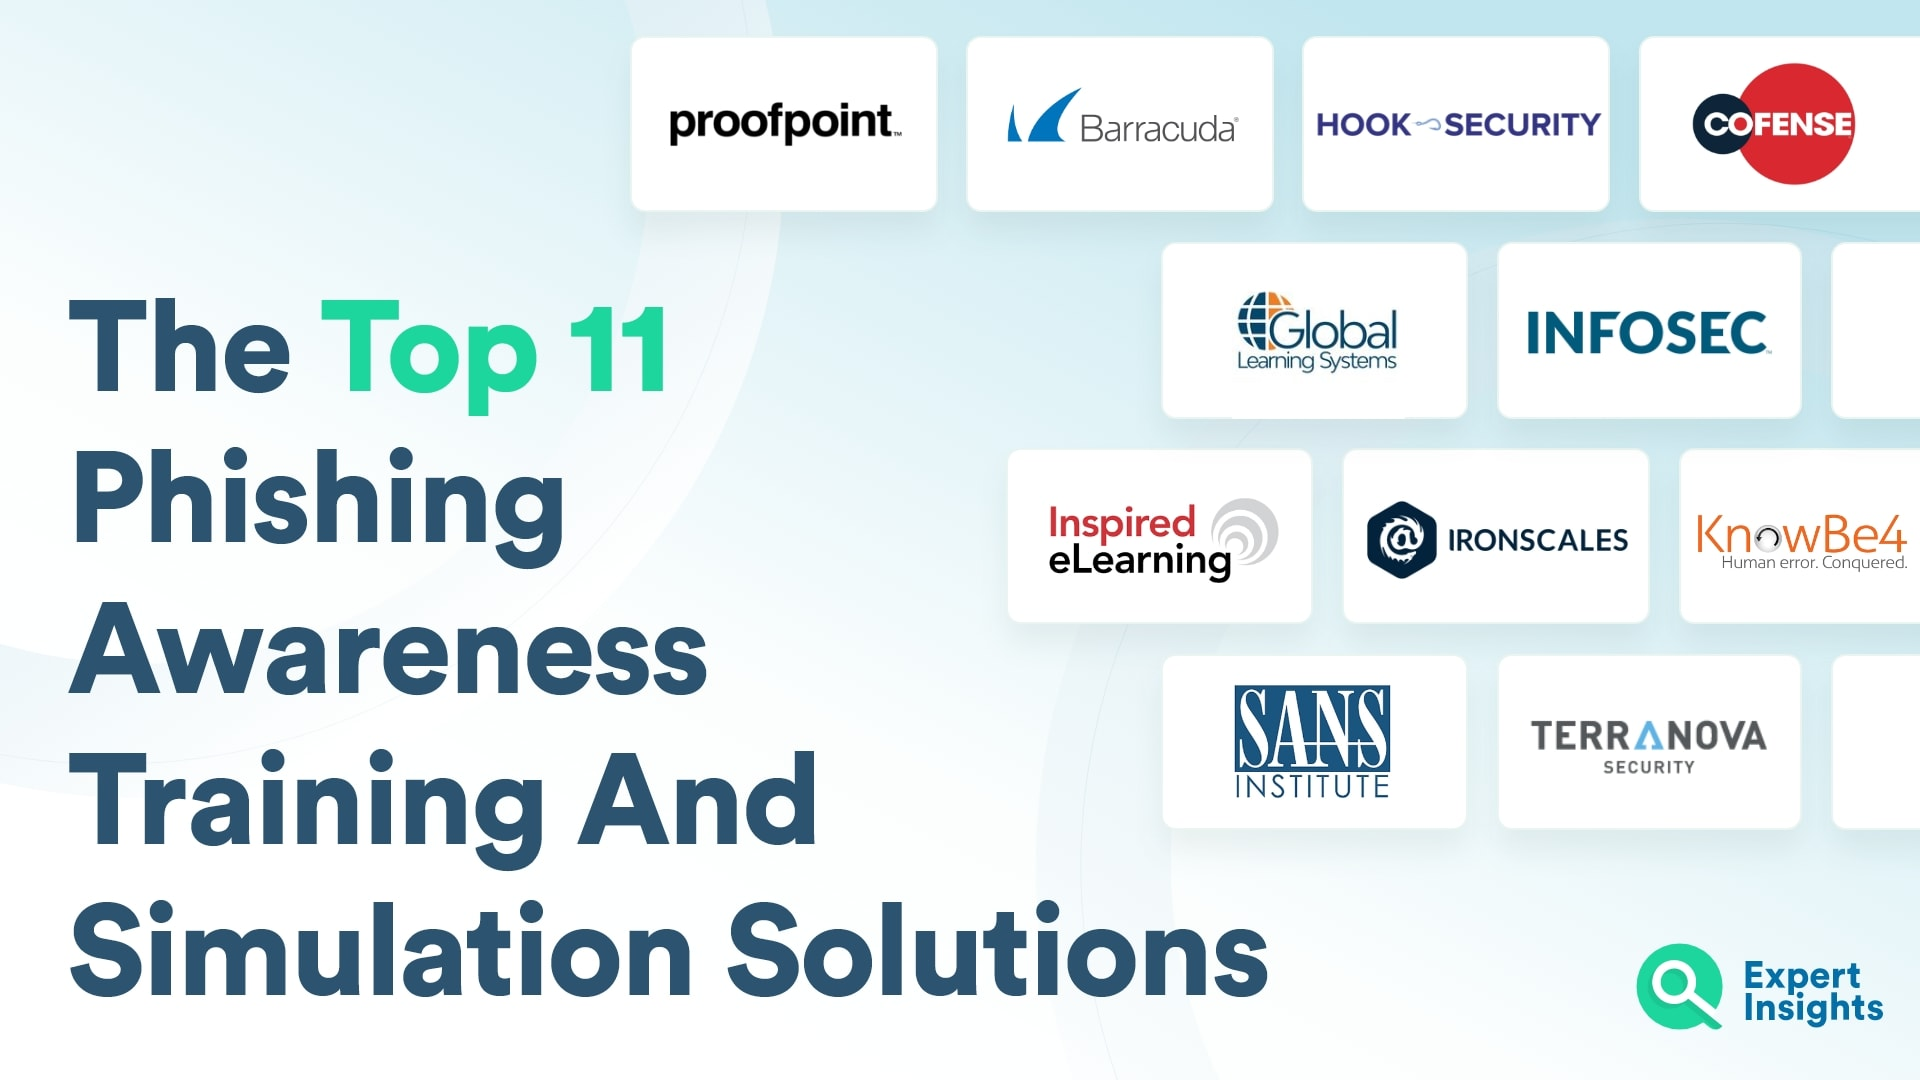 Top Phishing Awareness Training And Simulation Solutions - Expert Insights